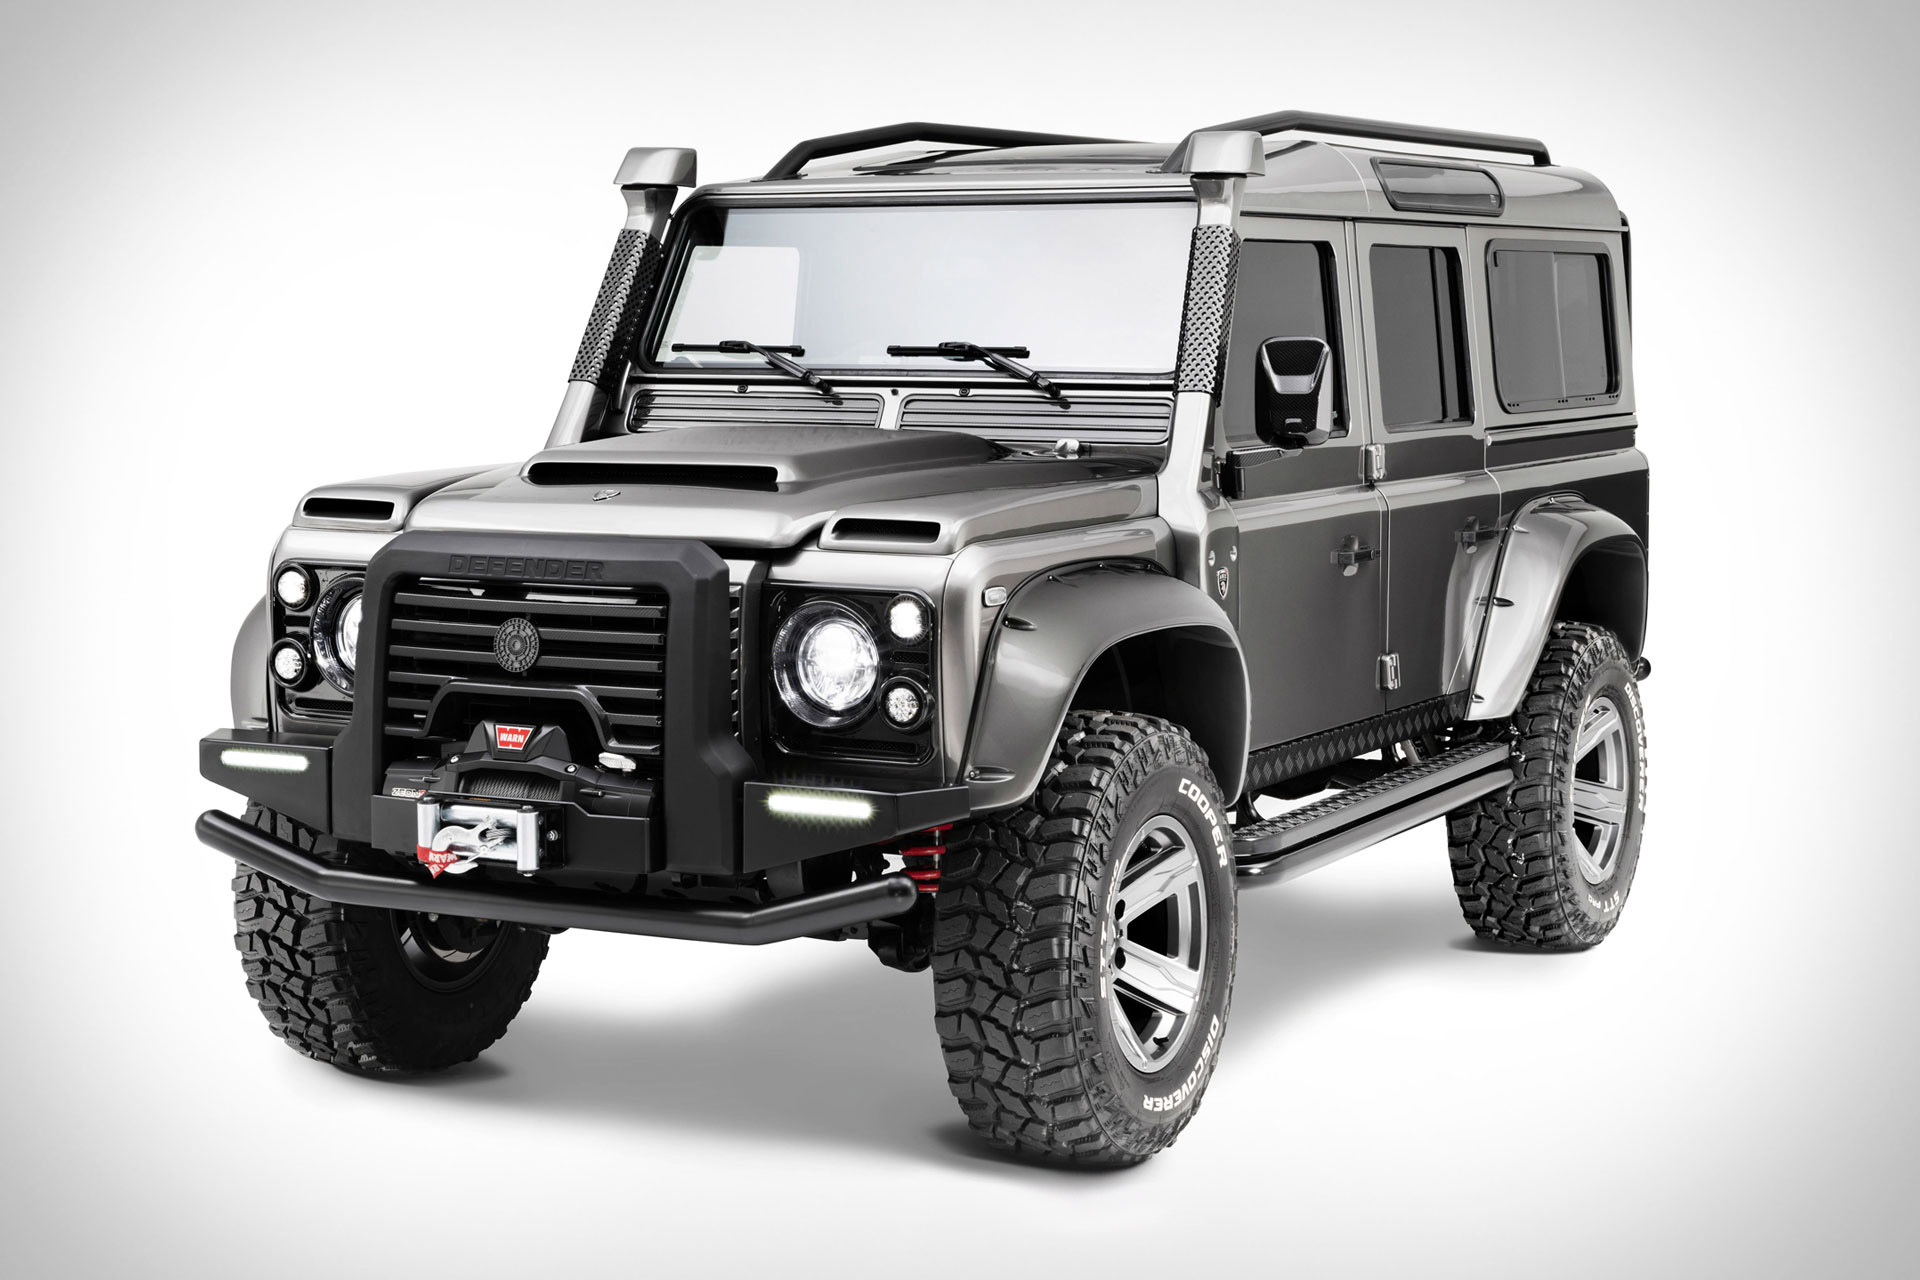 Ares Land Rover Defender